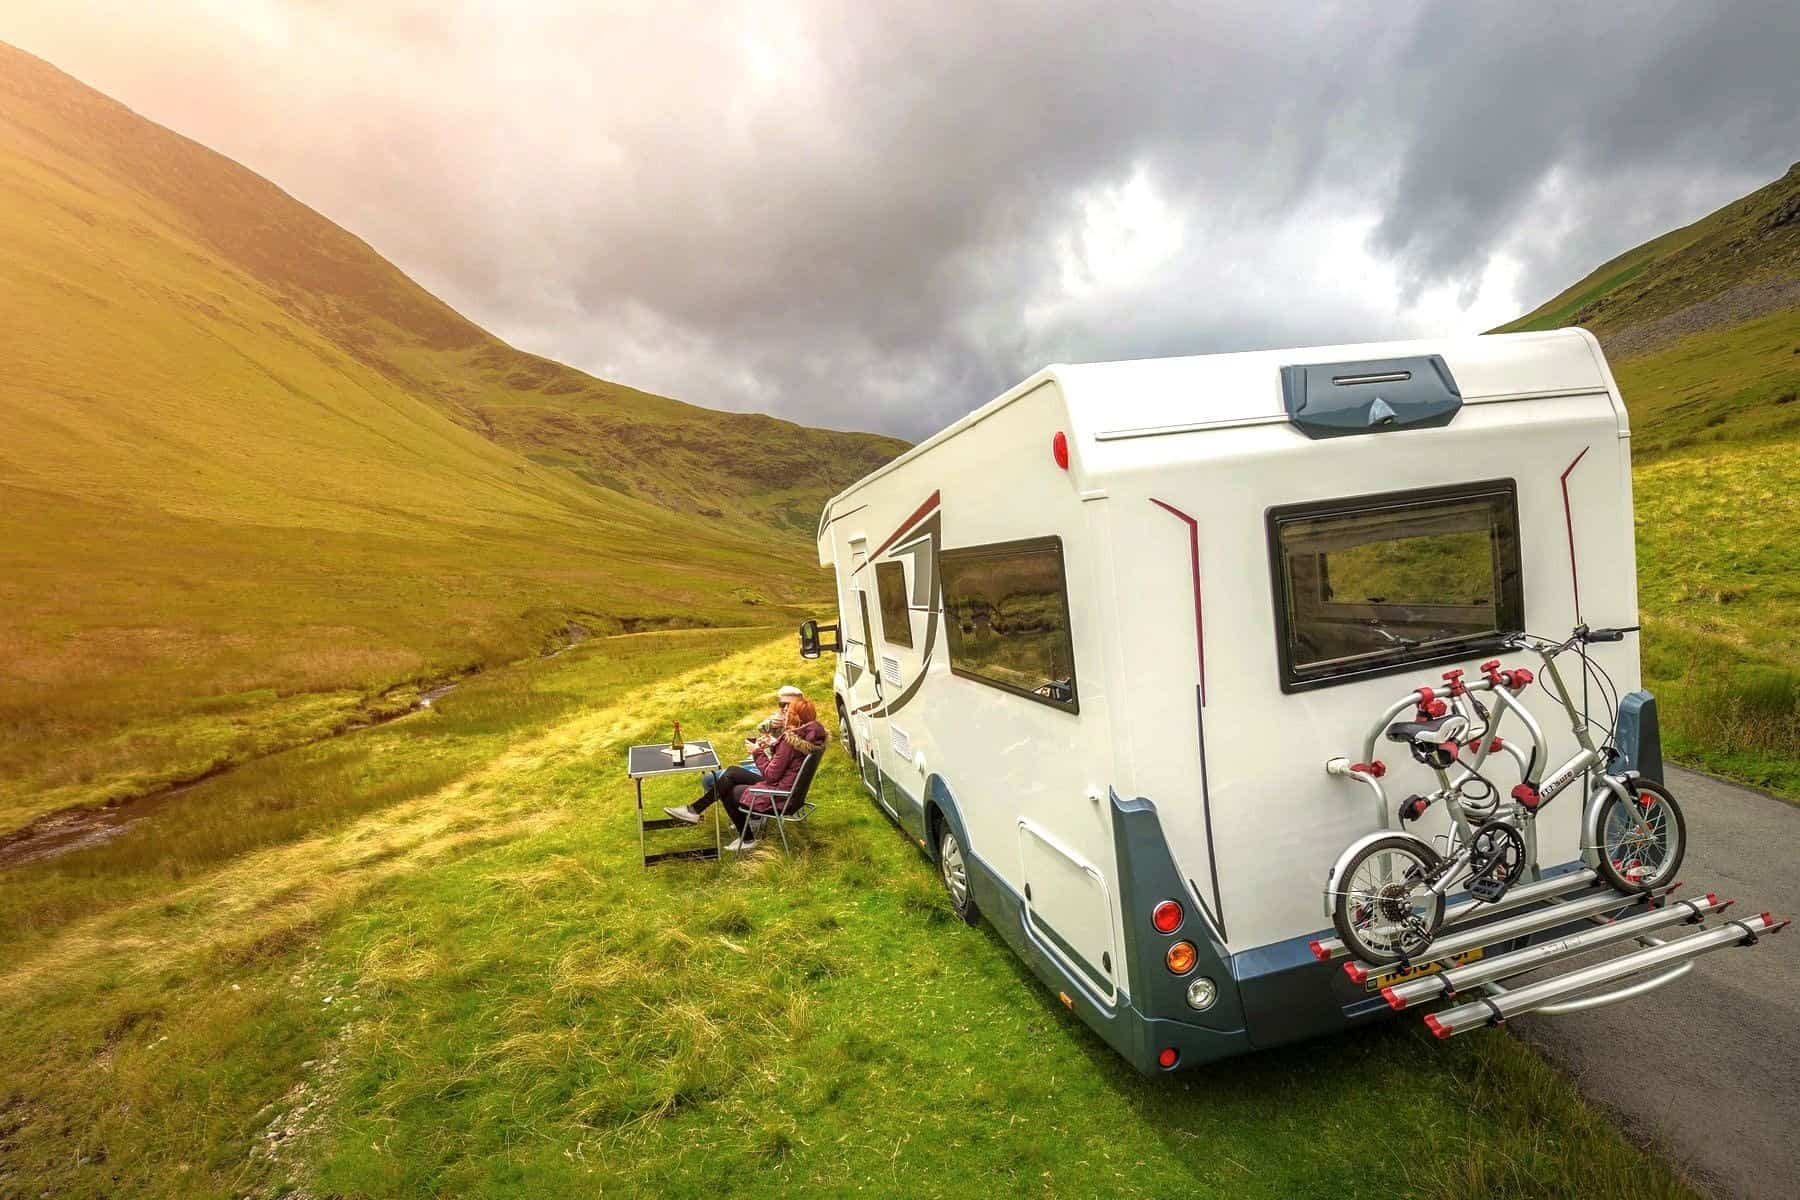 Motorhome Couple outside_ View of Bike